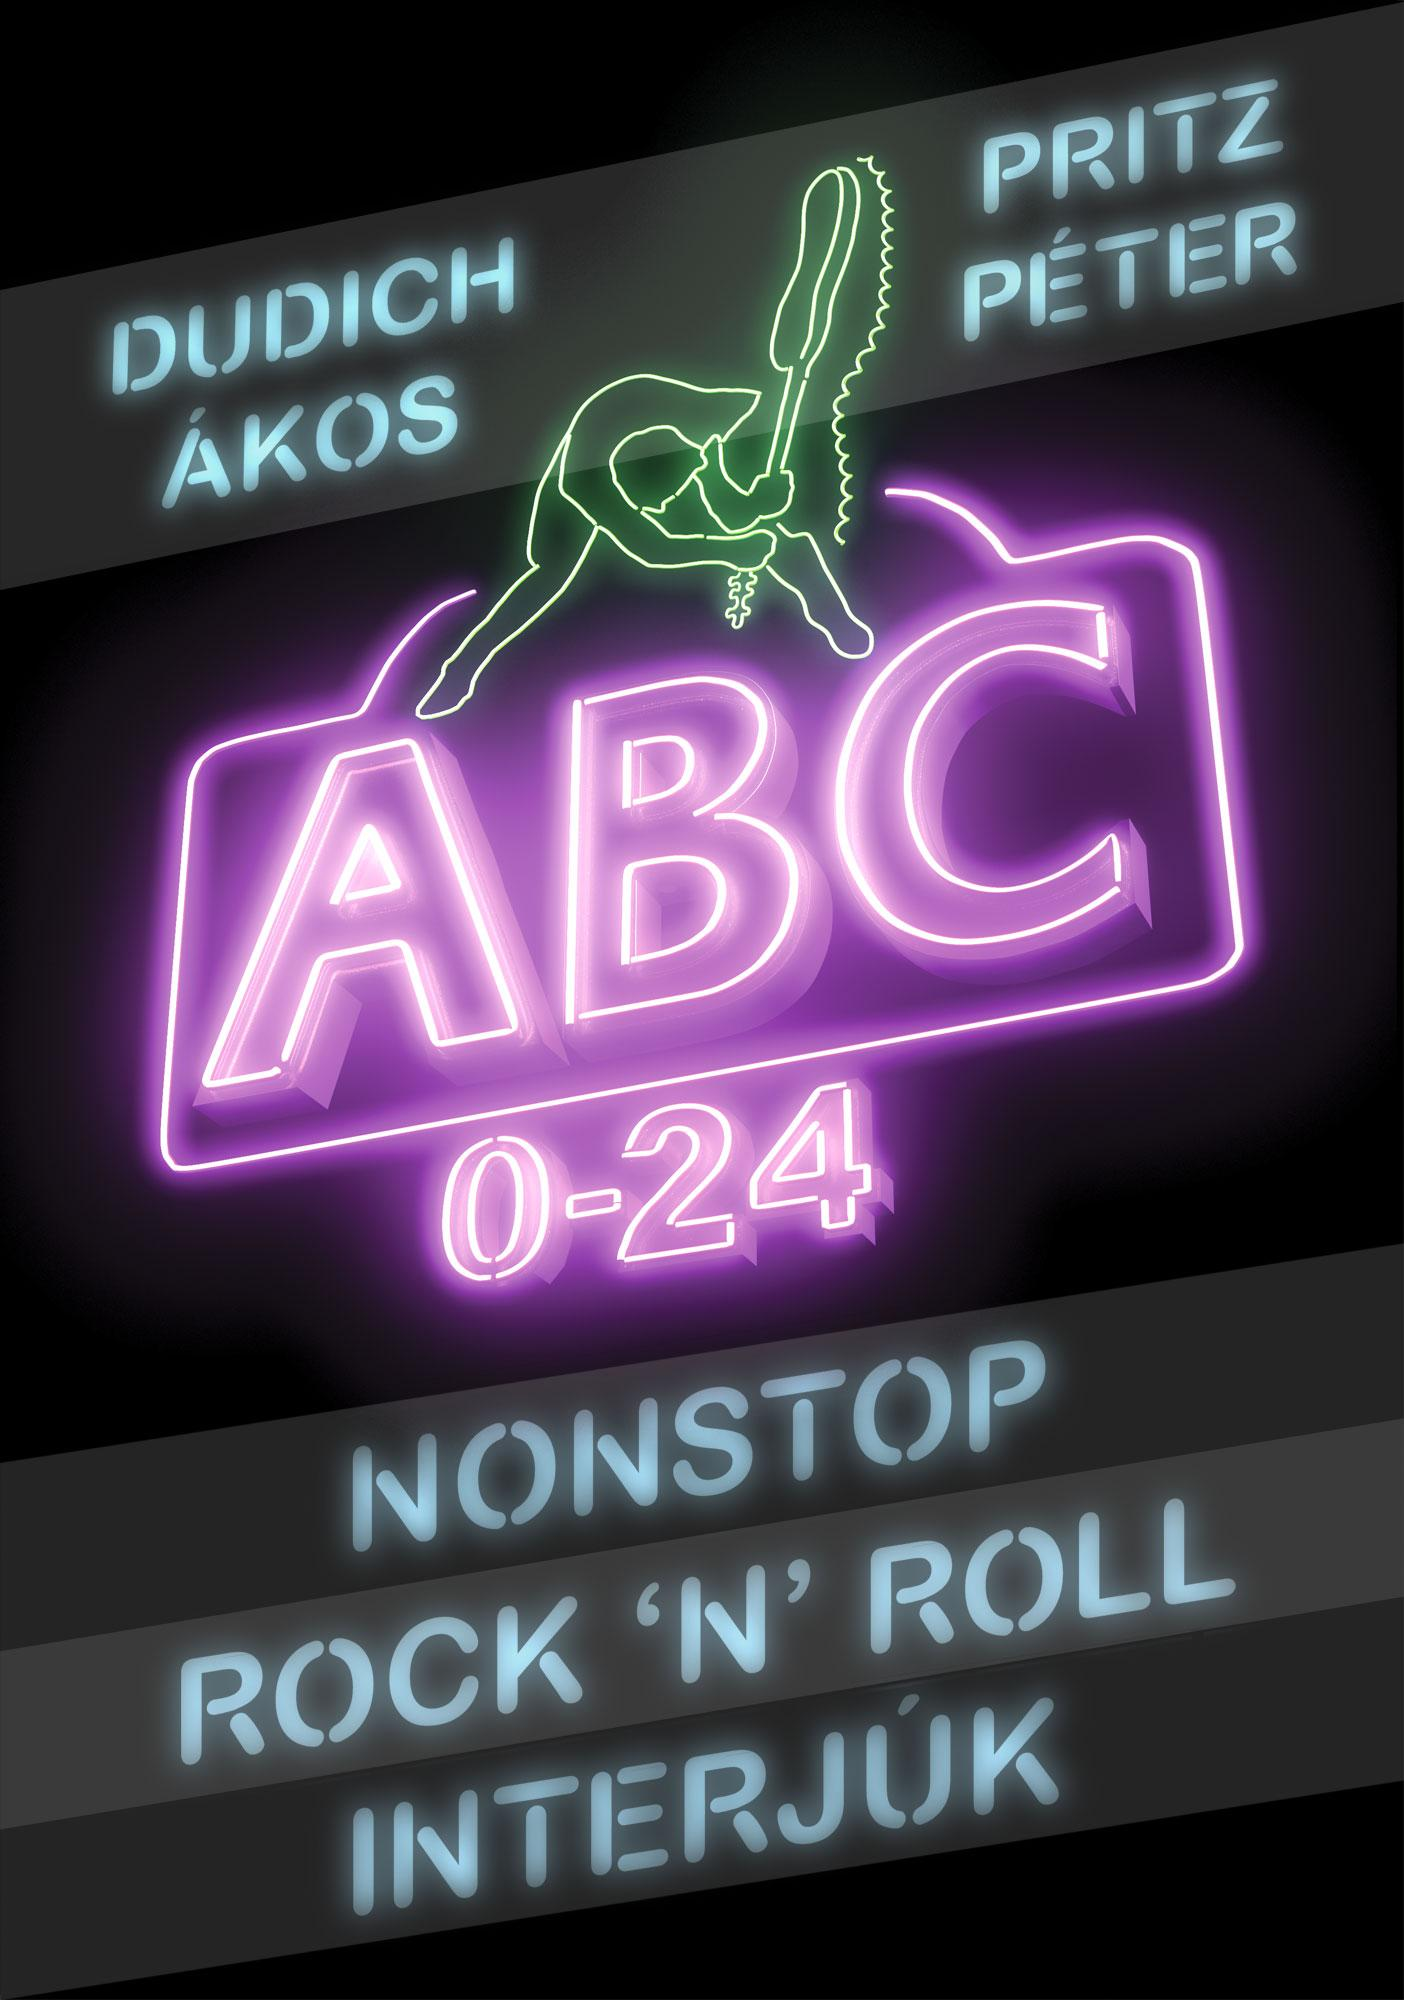 NONSTOP ROCK'N'ROLL INTERJÚK - ABC 0-24